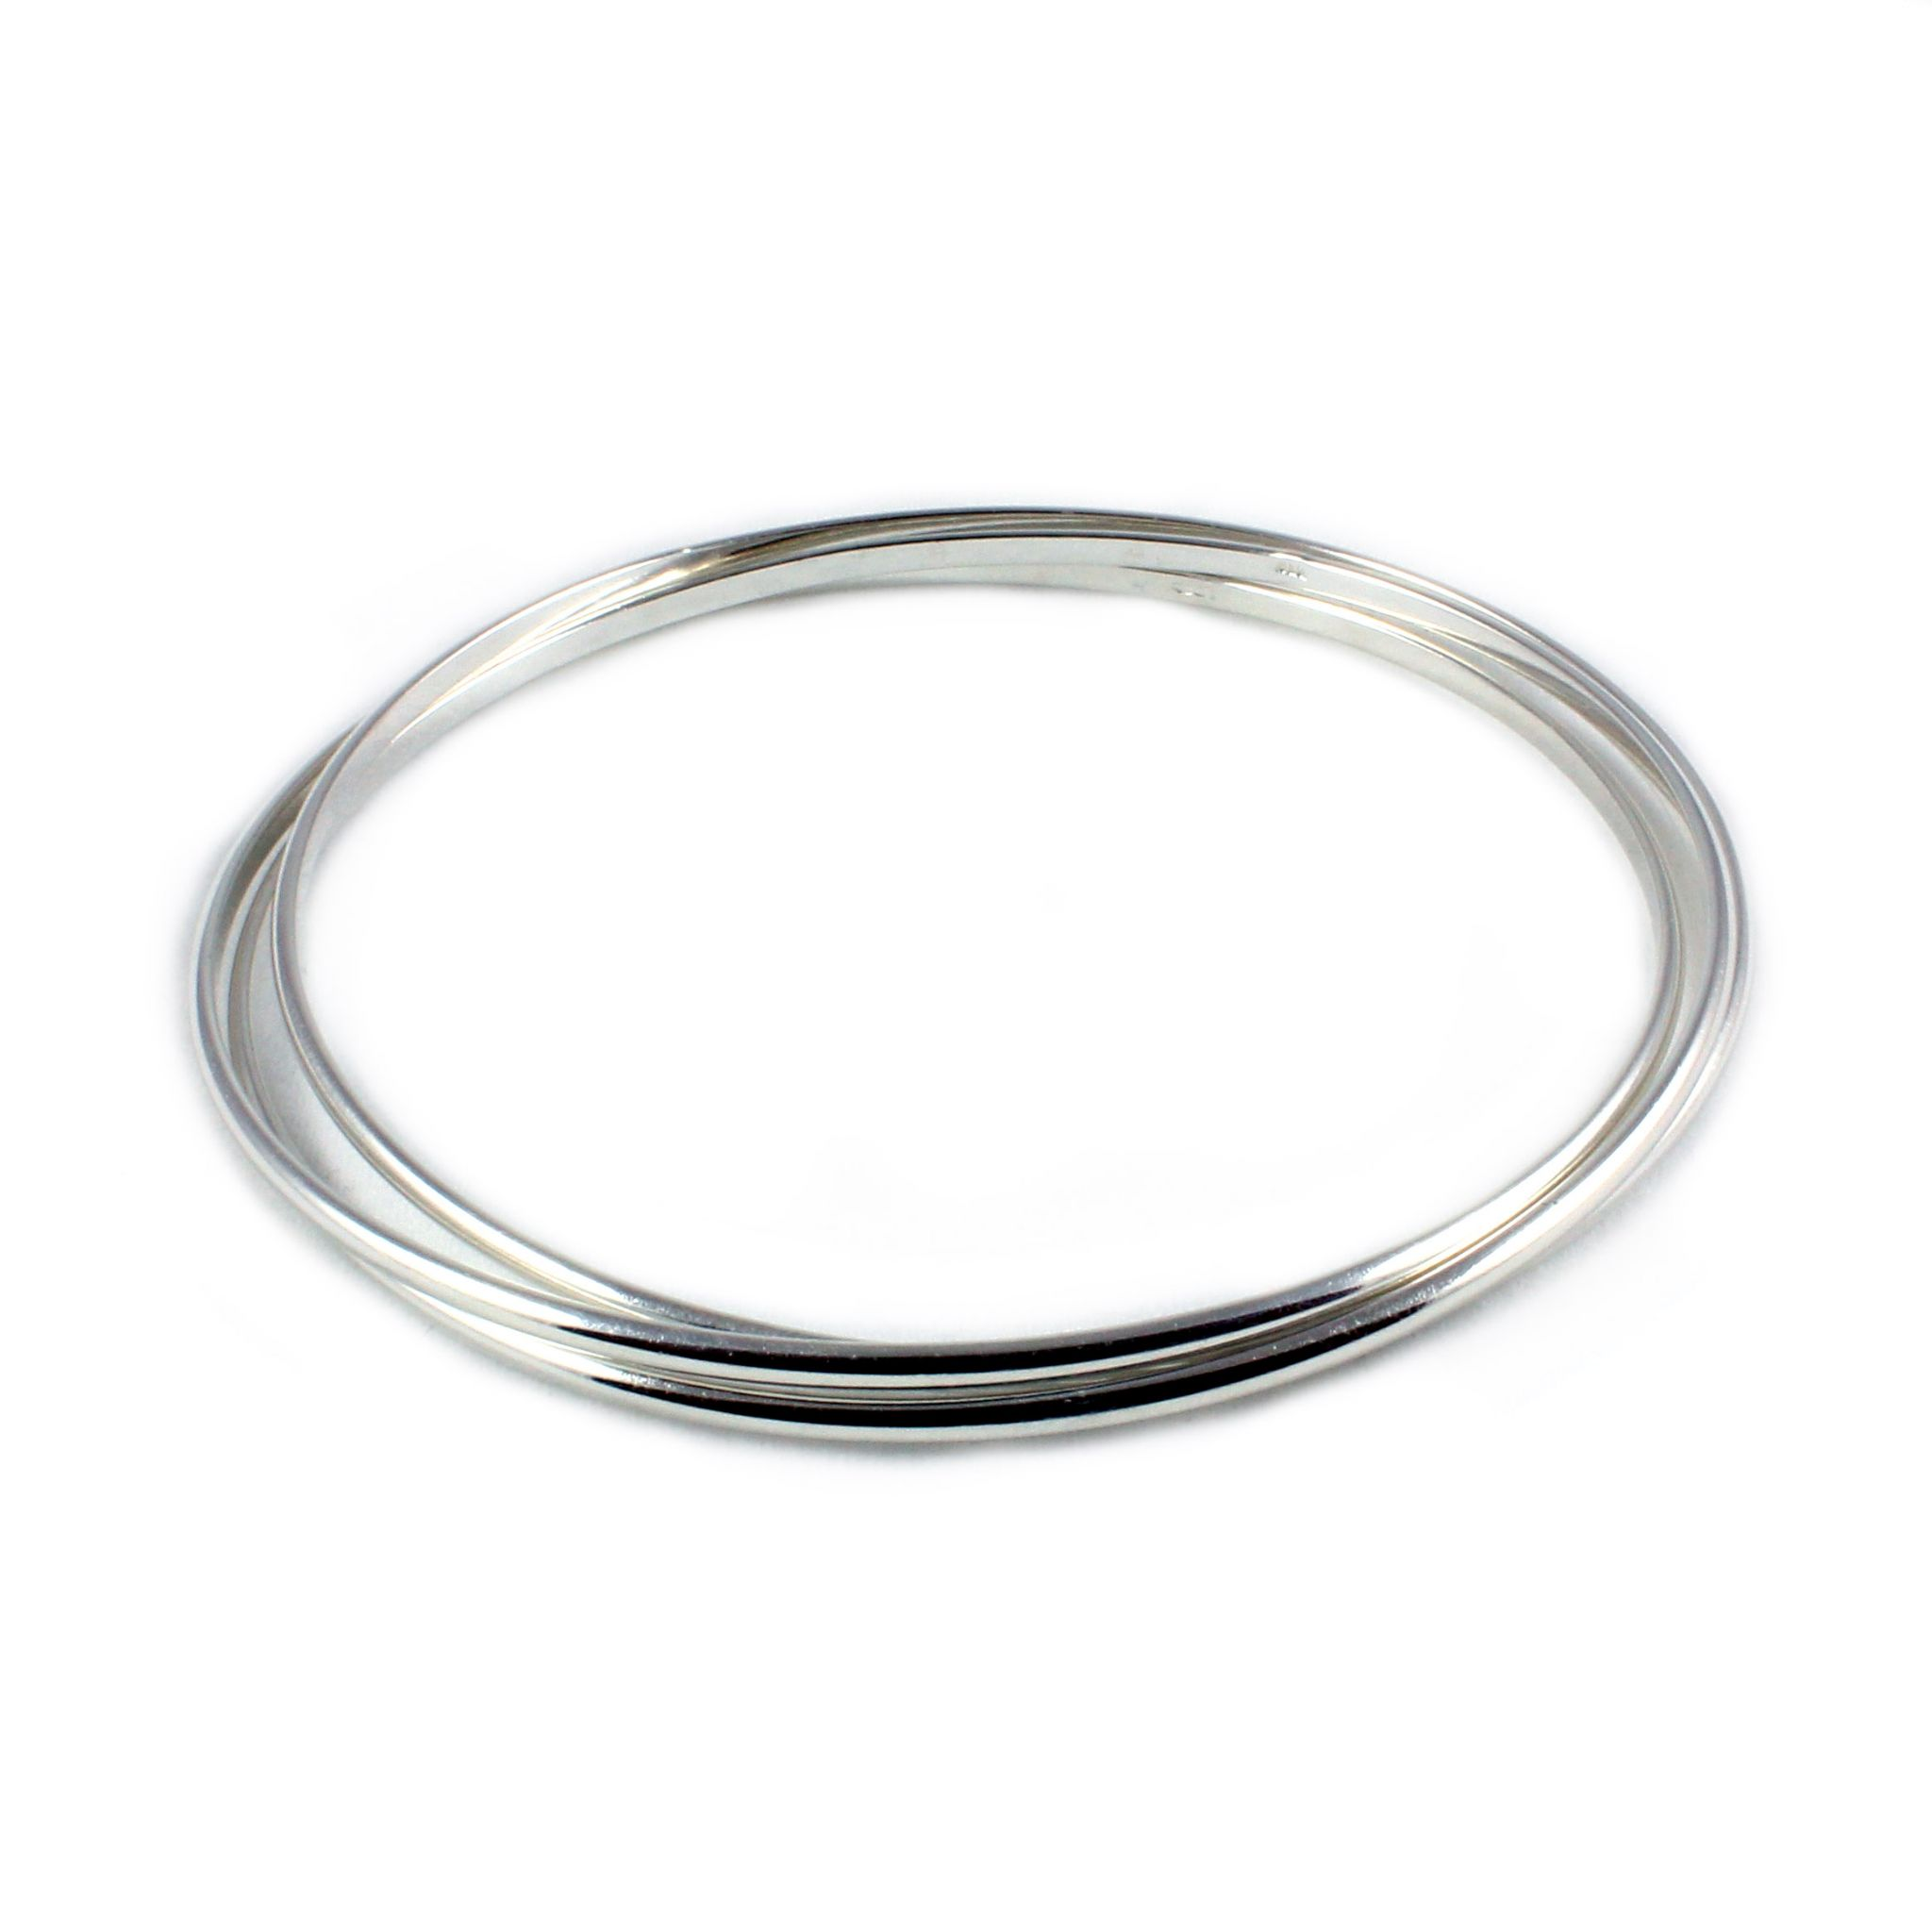 co alfred bangle bangles jewellery oxidized style silver delivery free shop twist sterling